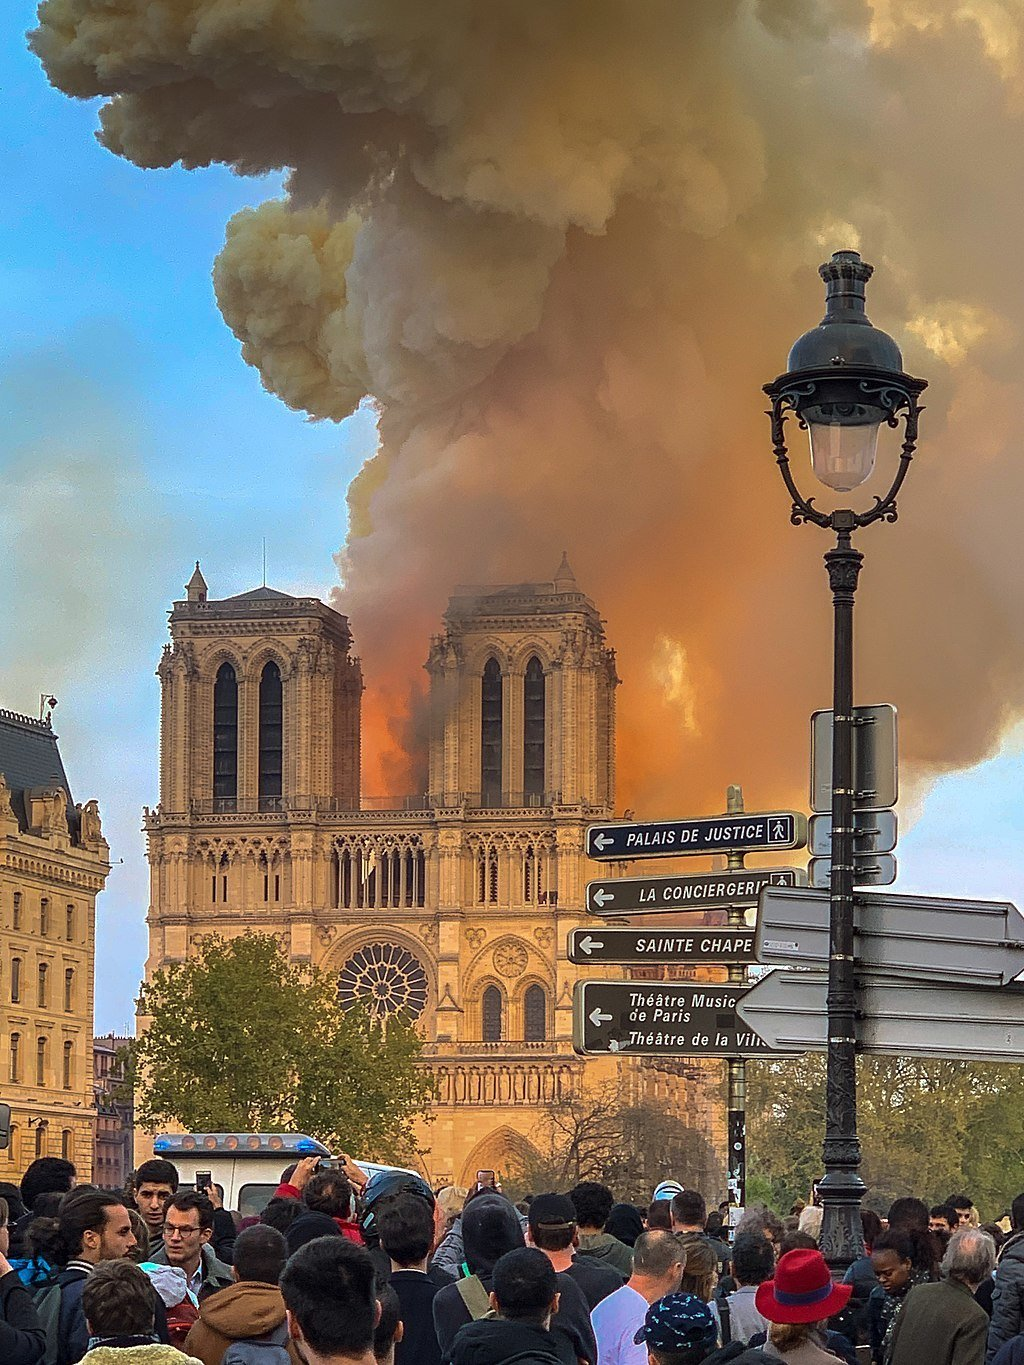 Crowds gathered as flames consumed one of Paris' most historic landmarks.